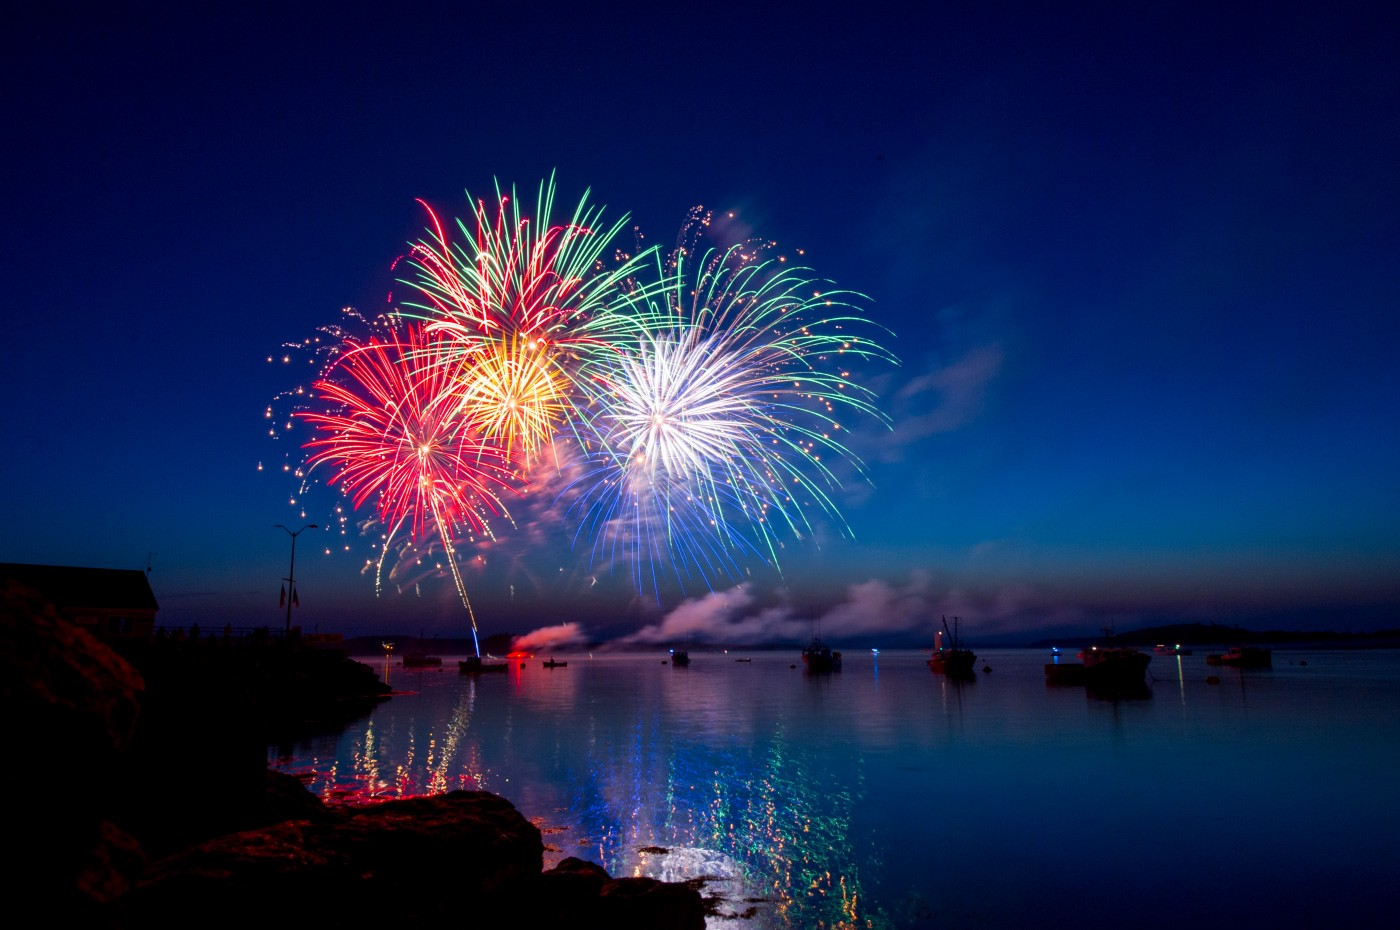 Picture of fireworks in red, gold, purple, and green over a lake.